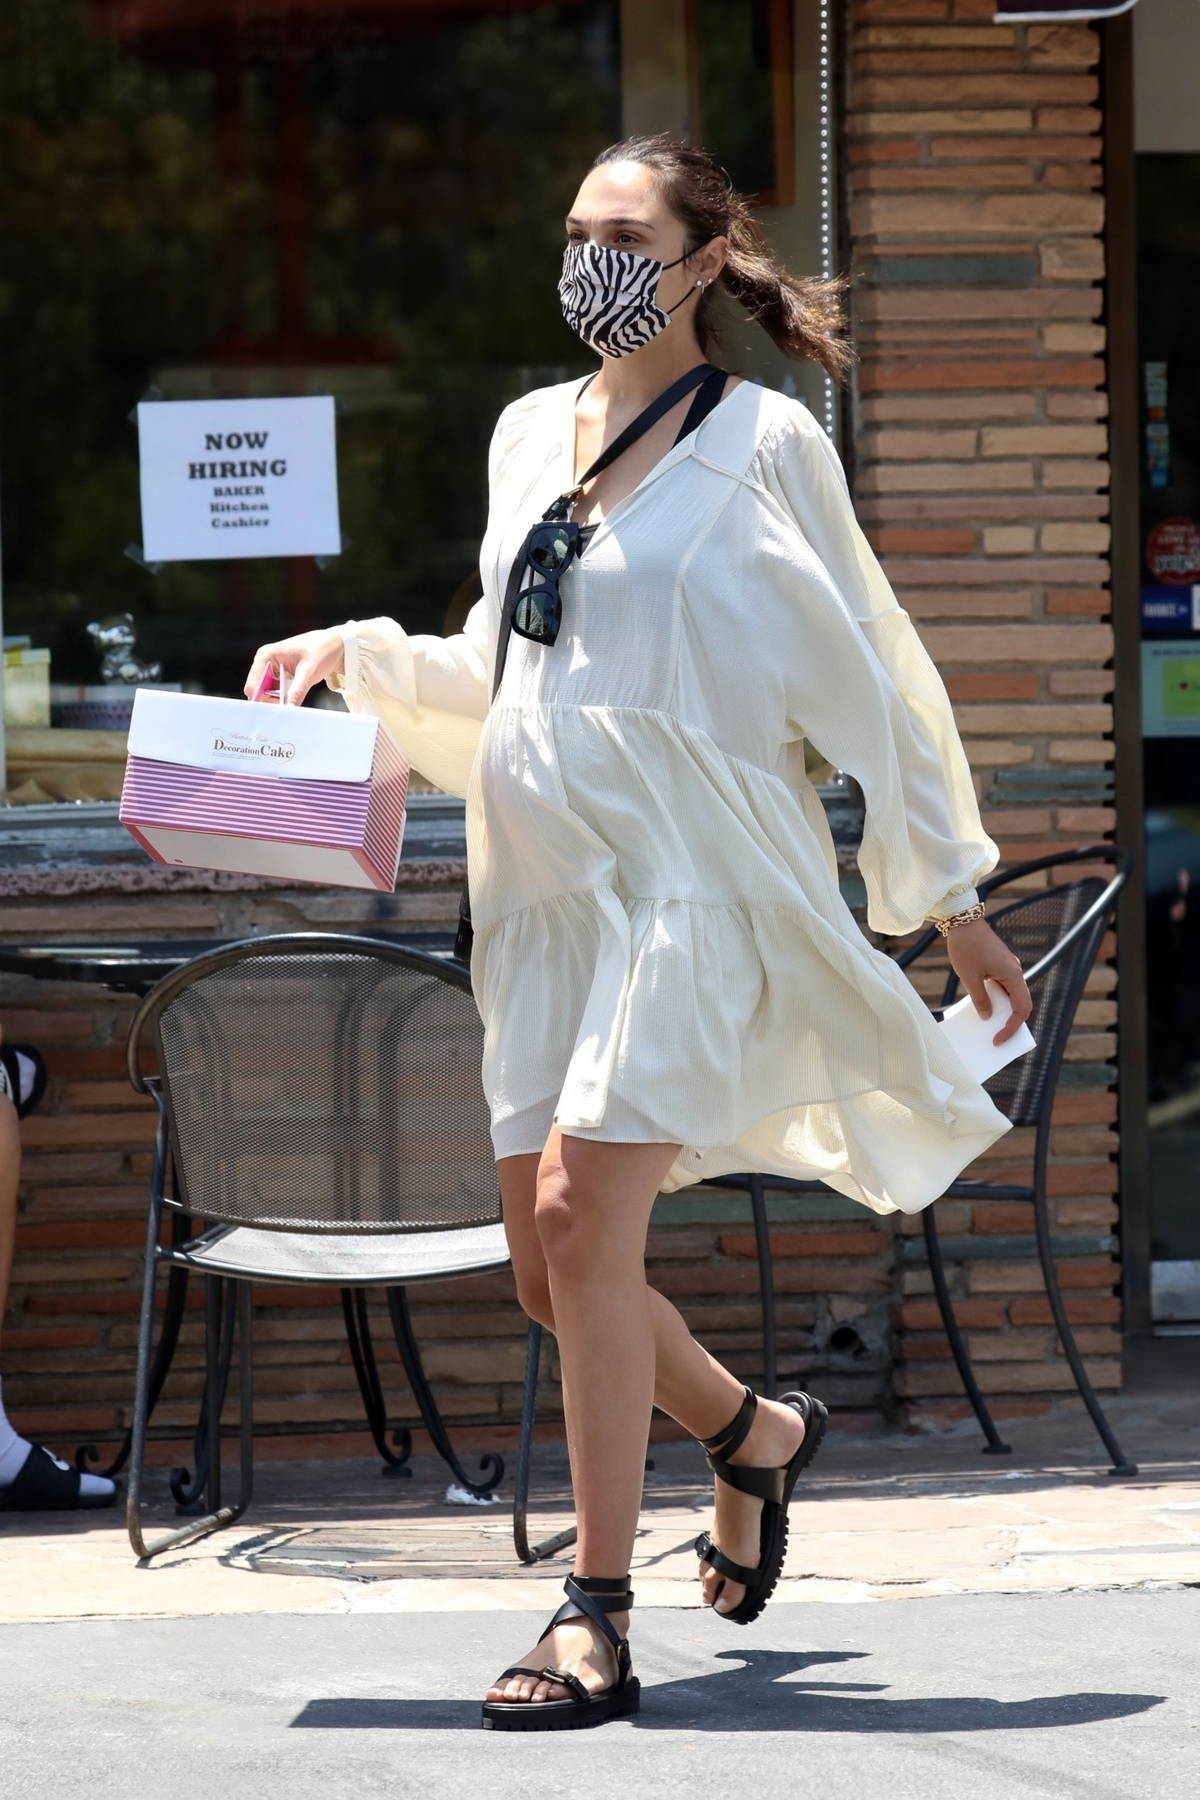 Gal Gadot looks radiant in a flowing off-white dress while making a stop at a local bakery in Los Angeles